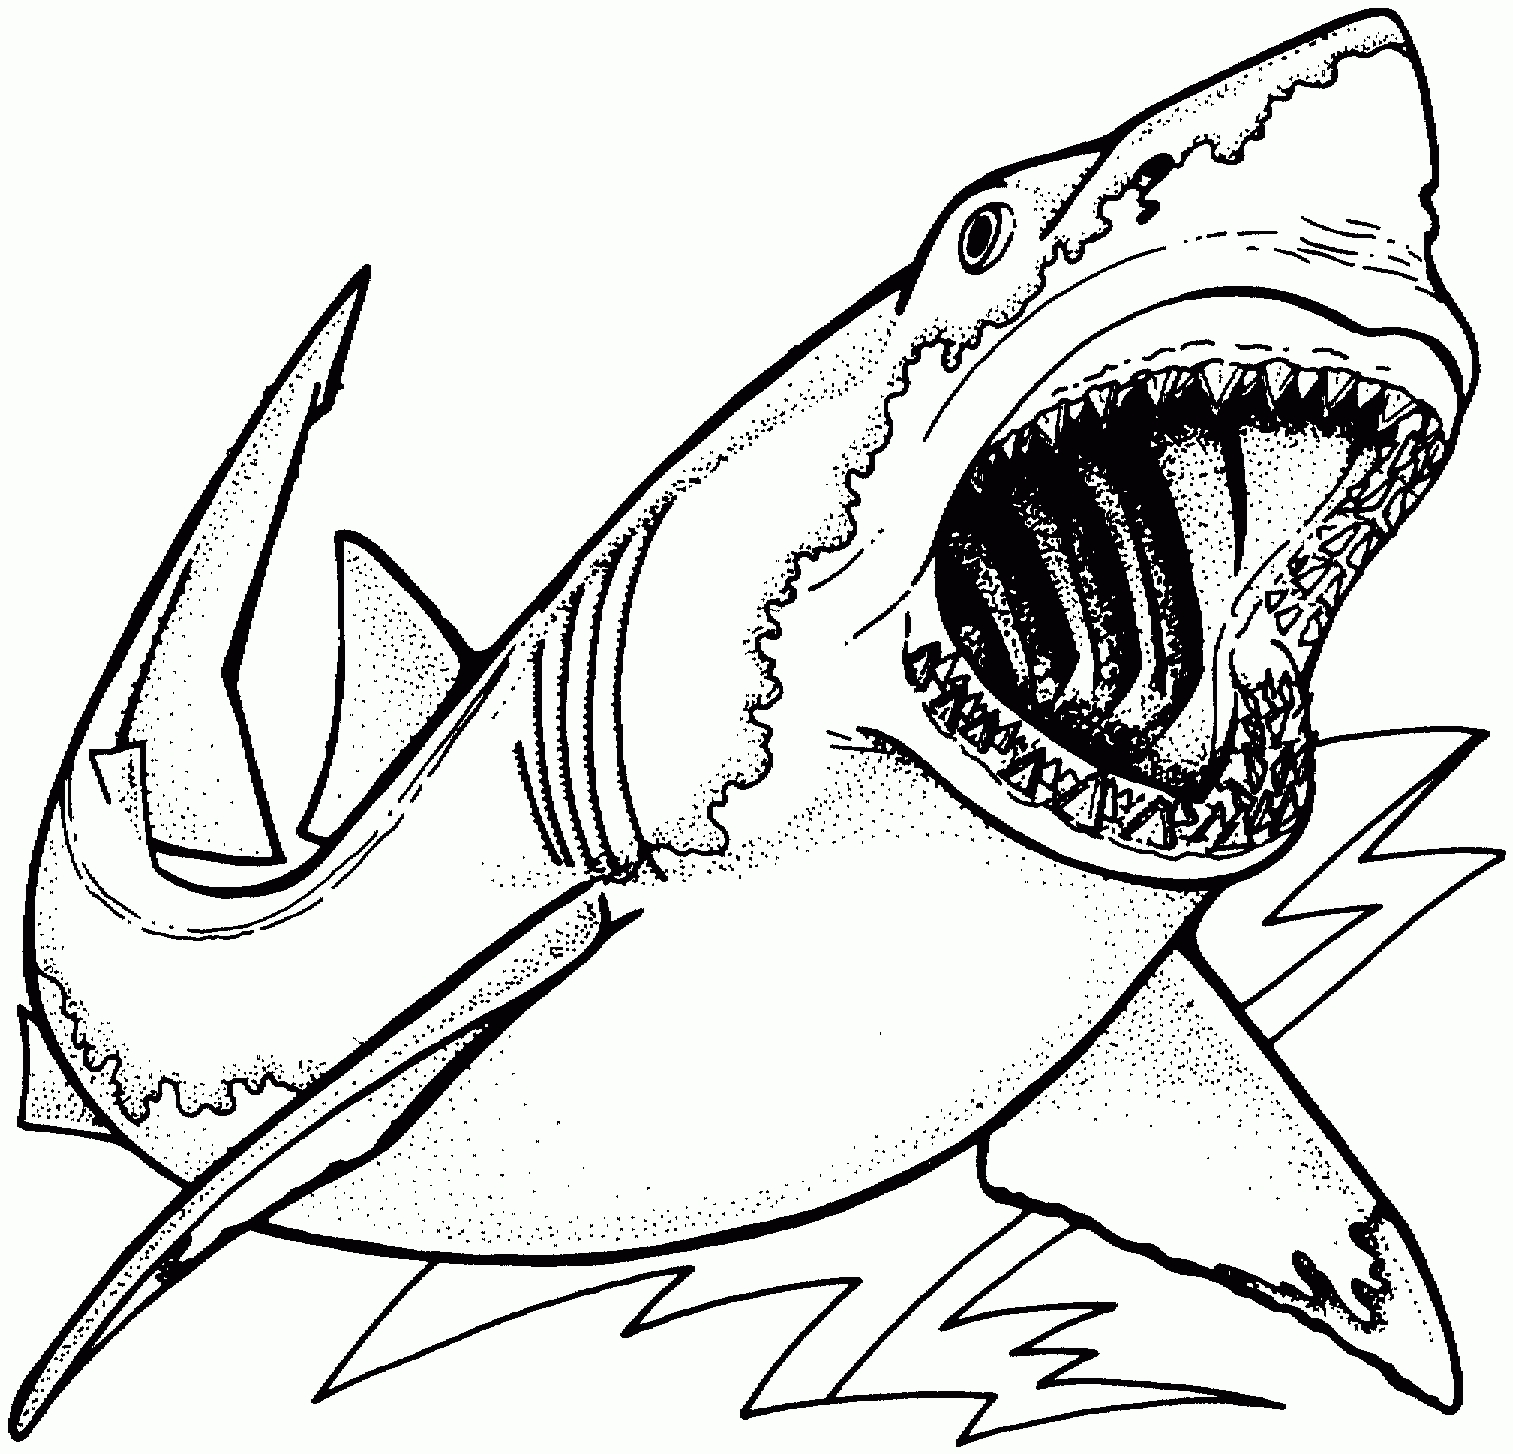 march coloring pages - coloring page of a shark tag hammerhead shark coloring pages to print kids coloring pages